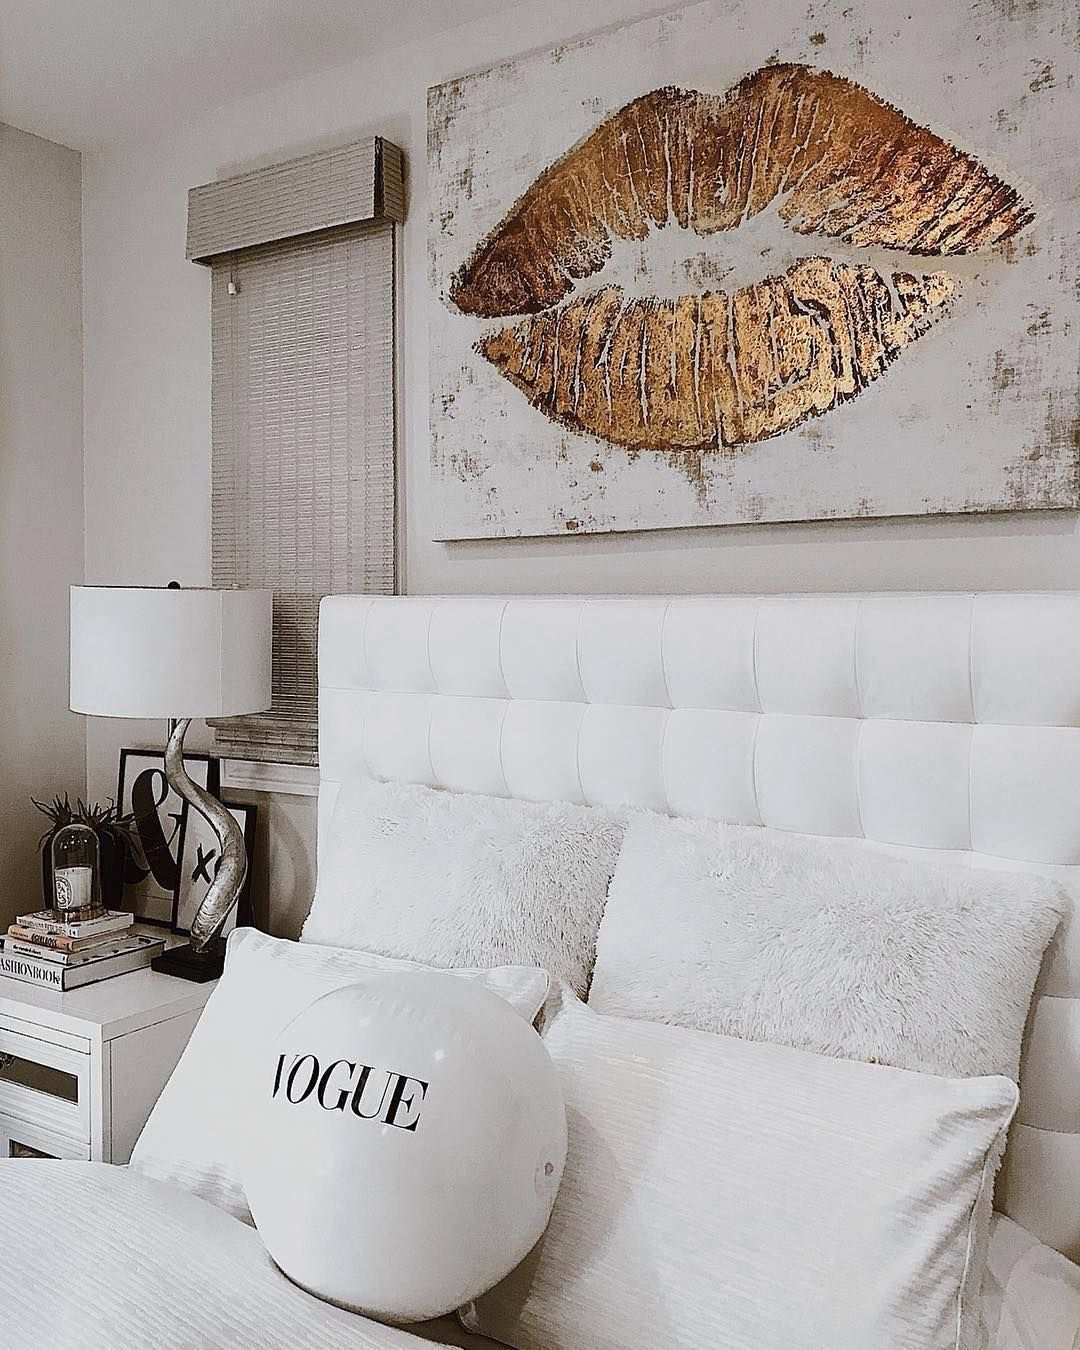 Modern bedroom| Vogue bedroom| Gold art| Lip art| wall art ...